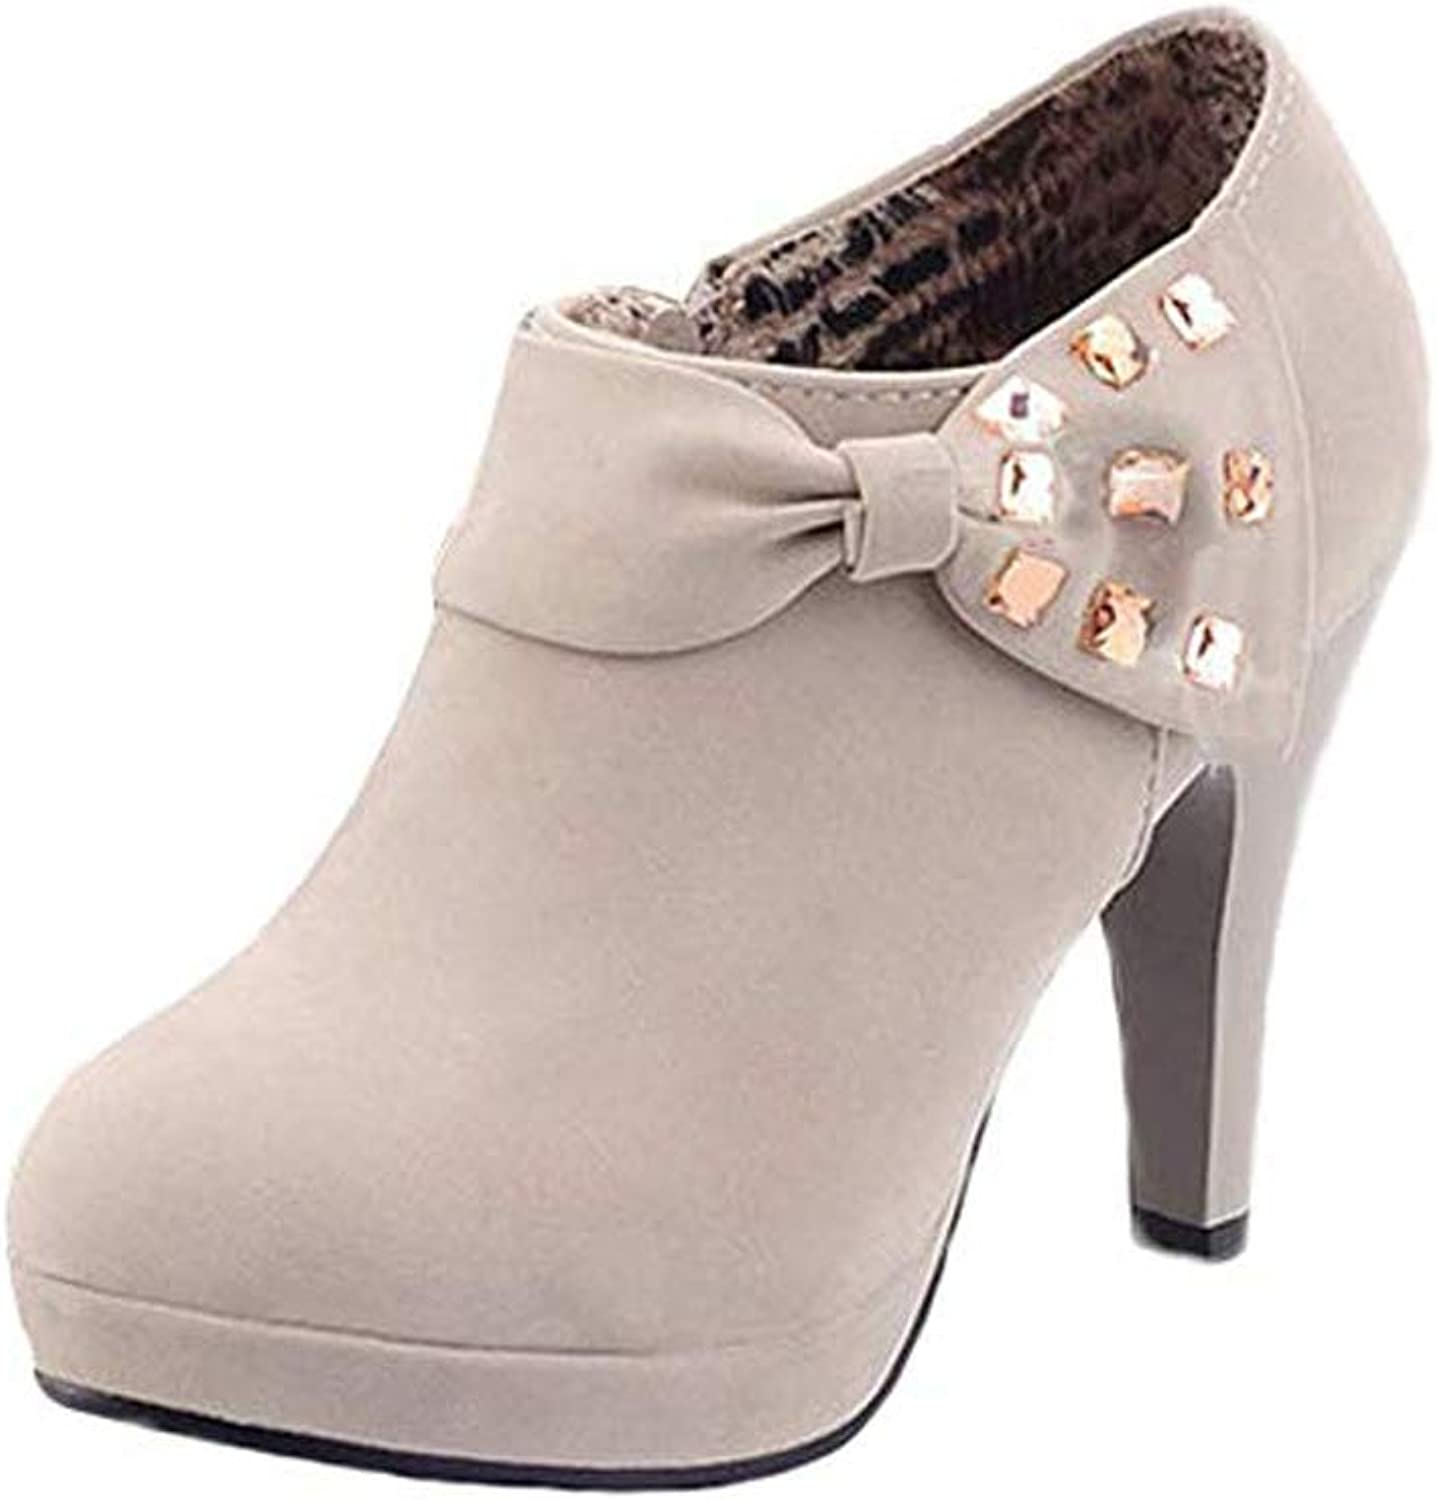 MayBeste Women Vintage Bowknot Pump Platform Low Top High Heel Ankle Boots Party Bridal shoes